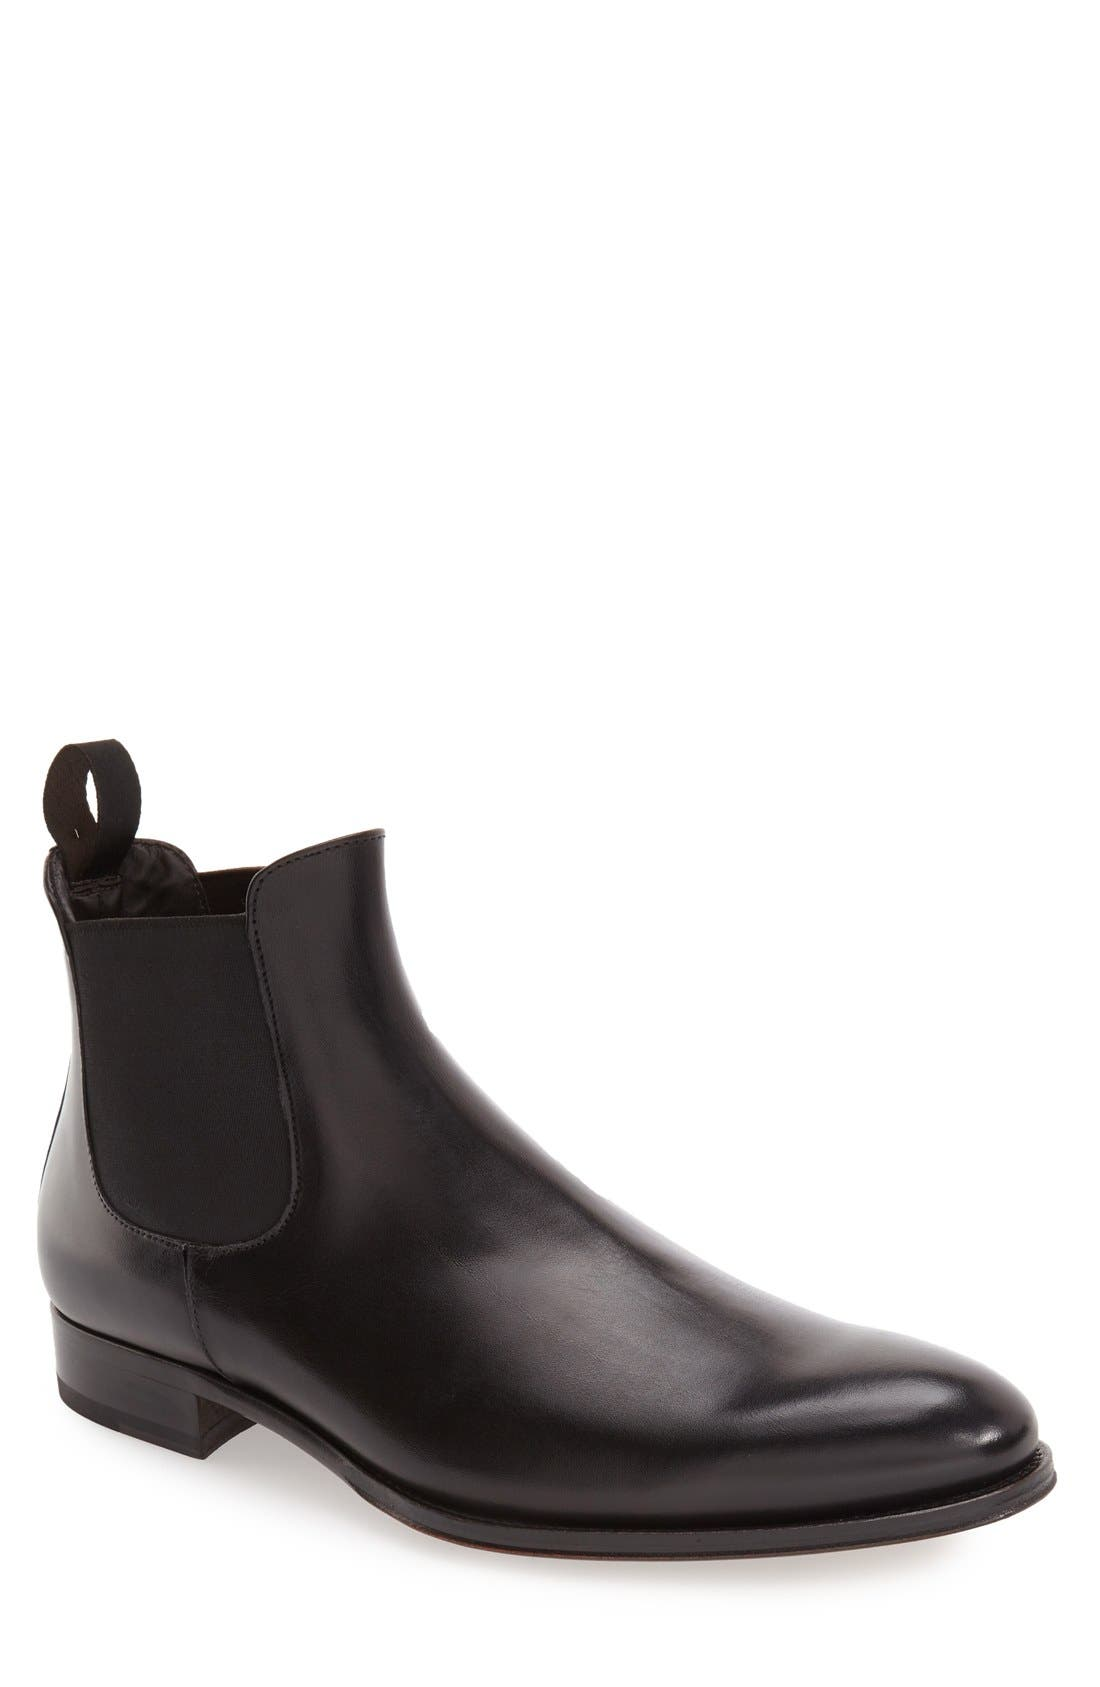 TO BOOT NEW YORK Toby Chelsea Boot, Main, color, BLACK LEATHER